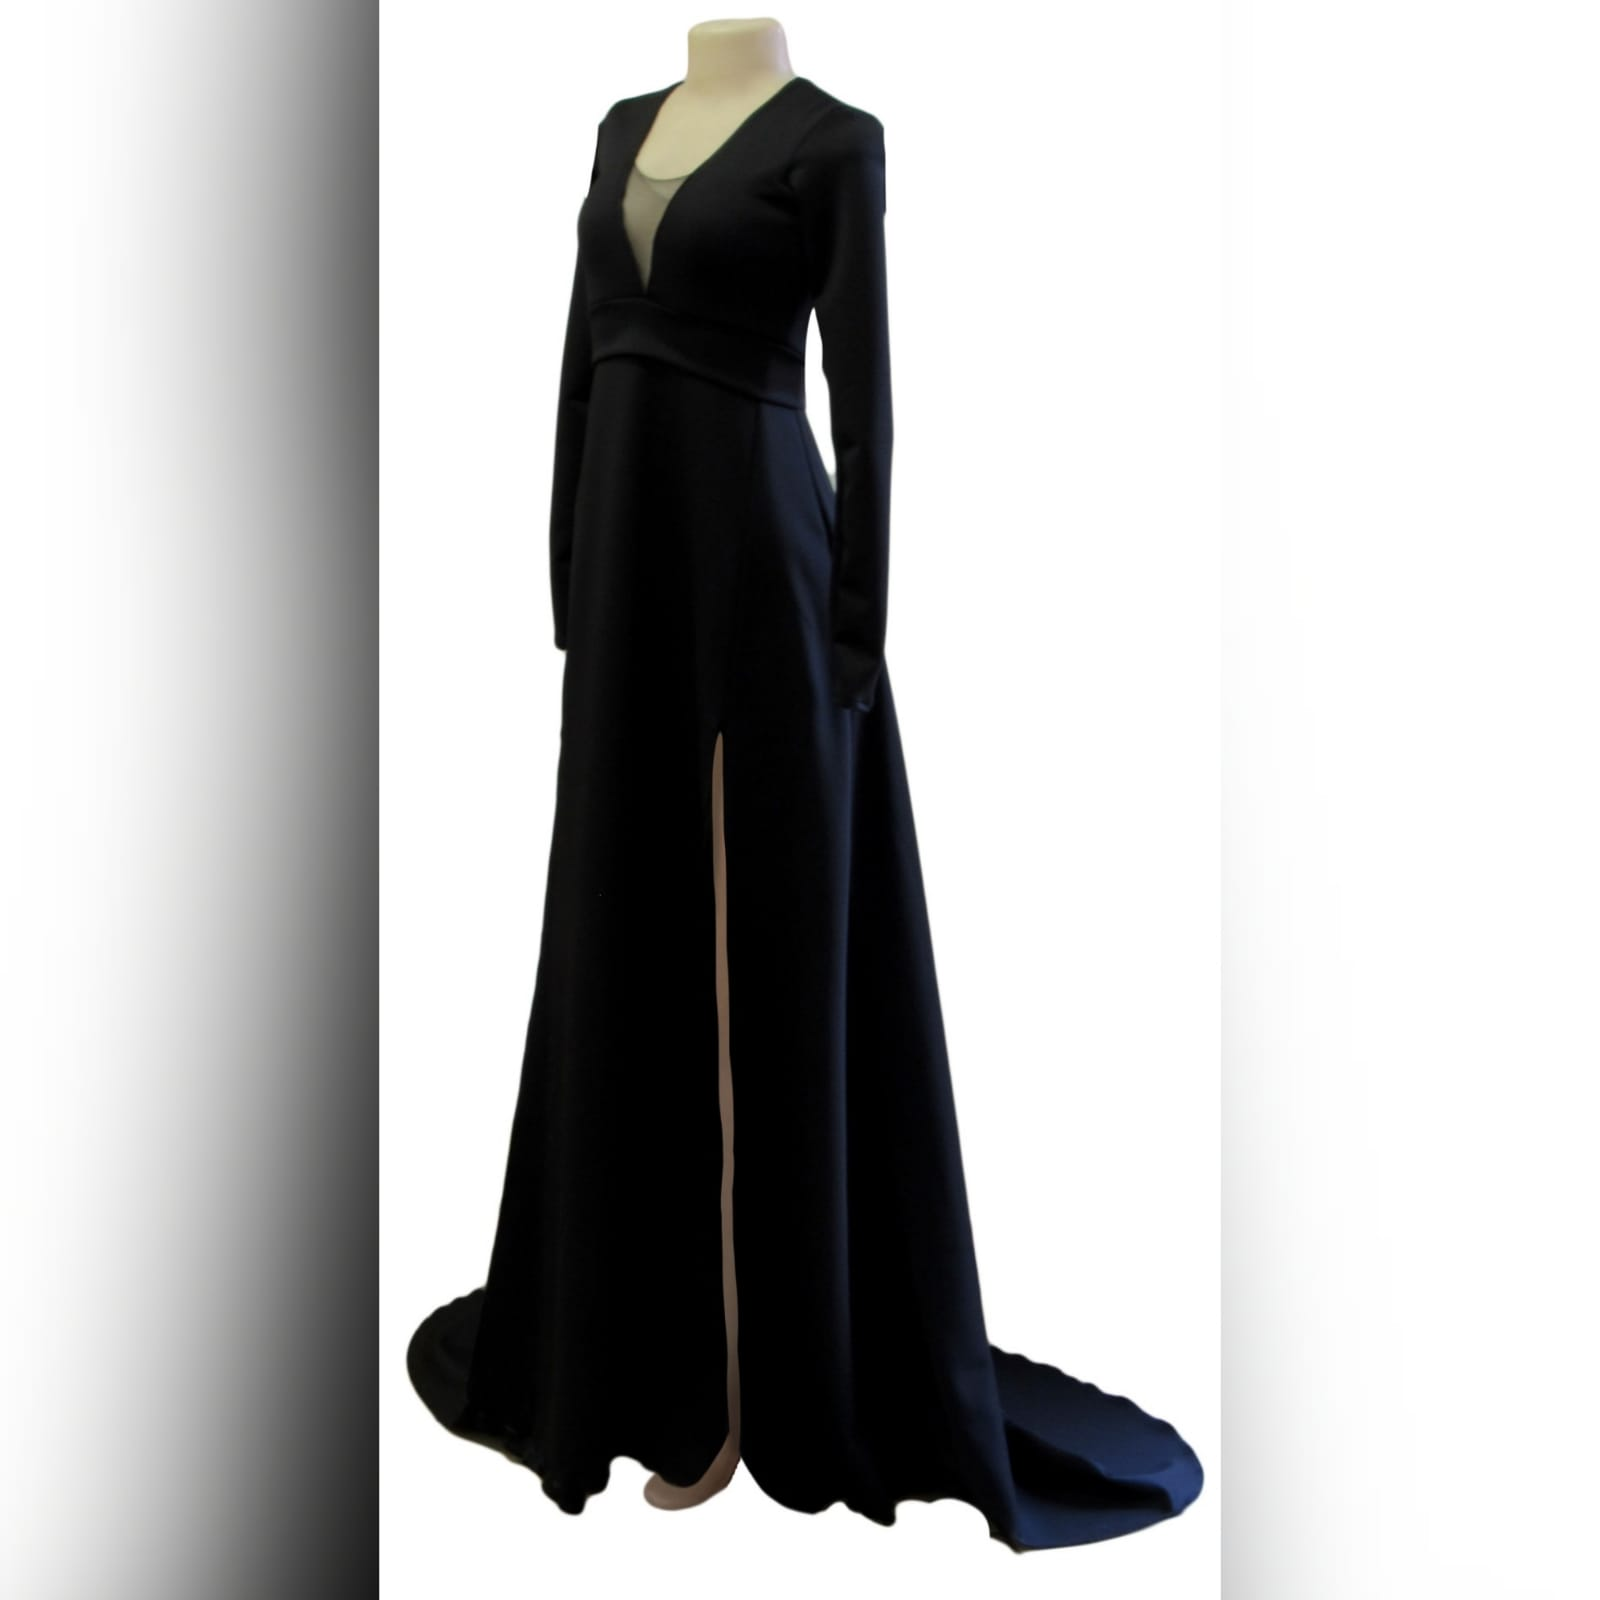 Long black a-line formal dress 1 long black a-line formal dress with an illusion v neckline, long sleeves a slit and a train.